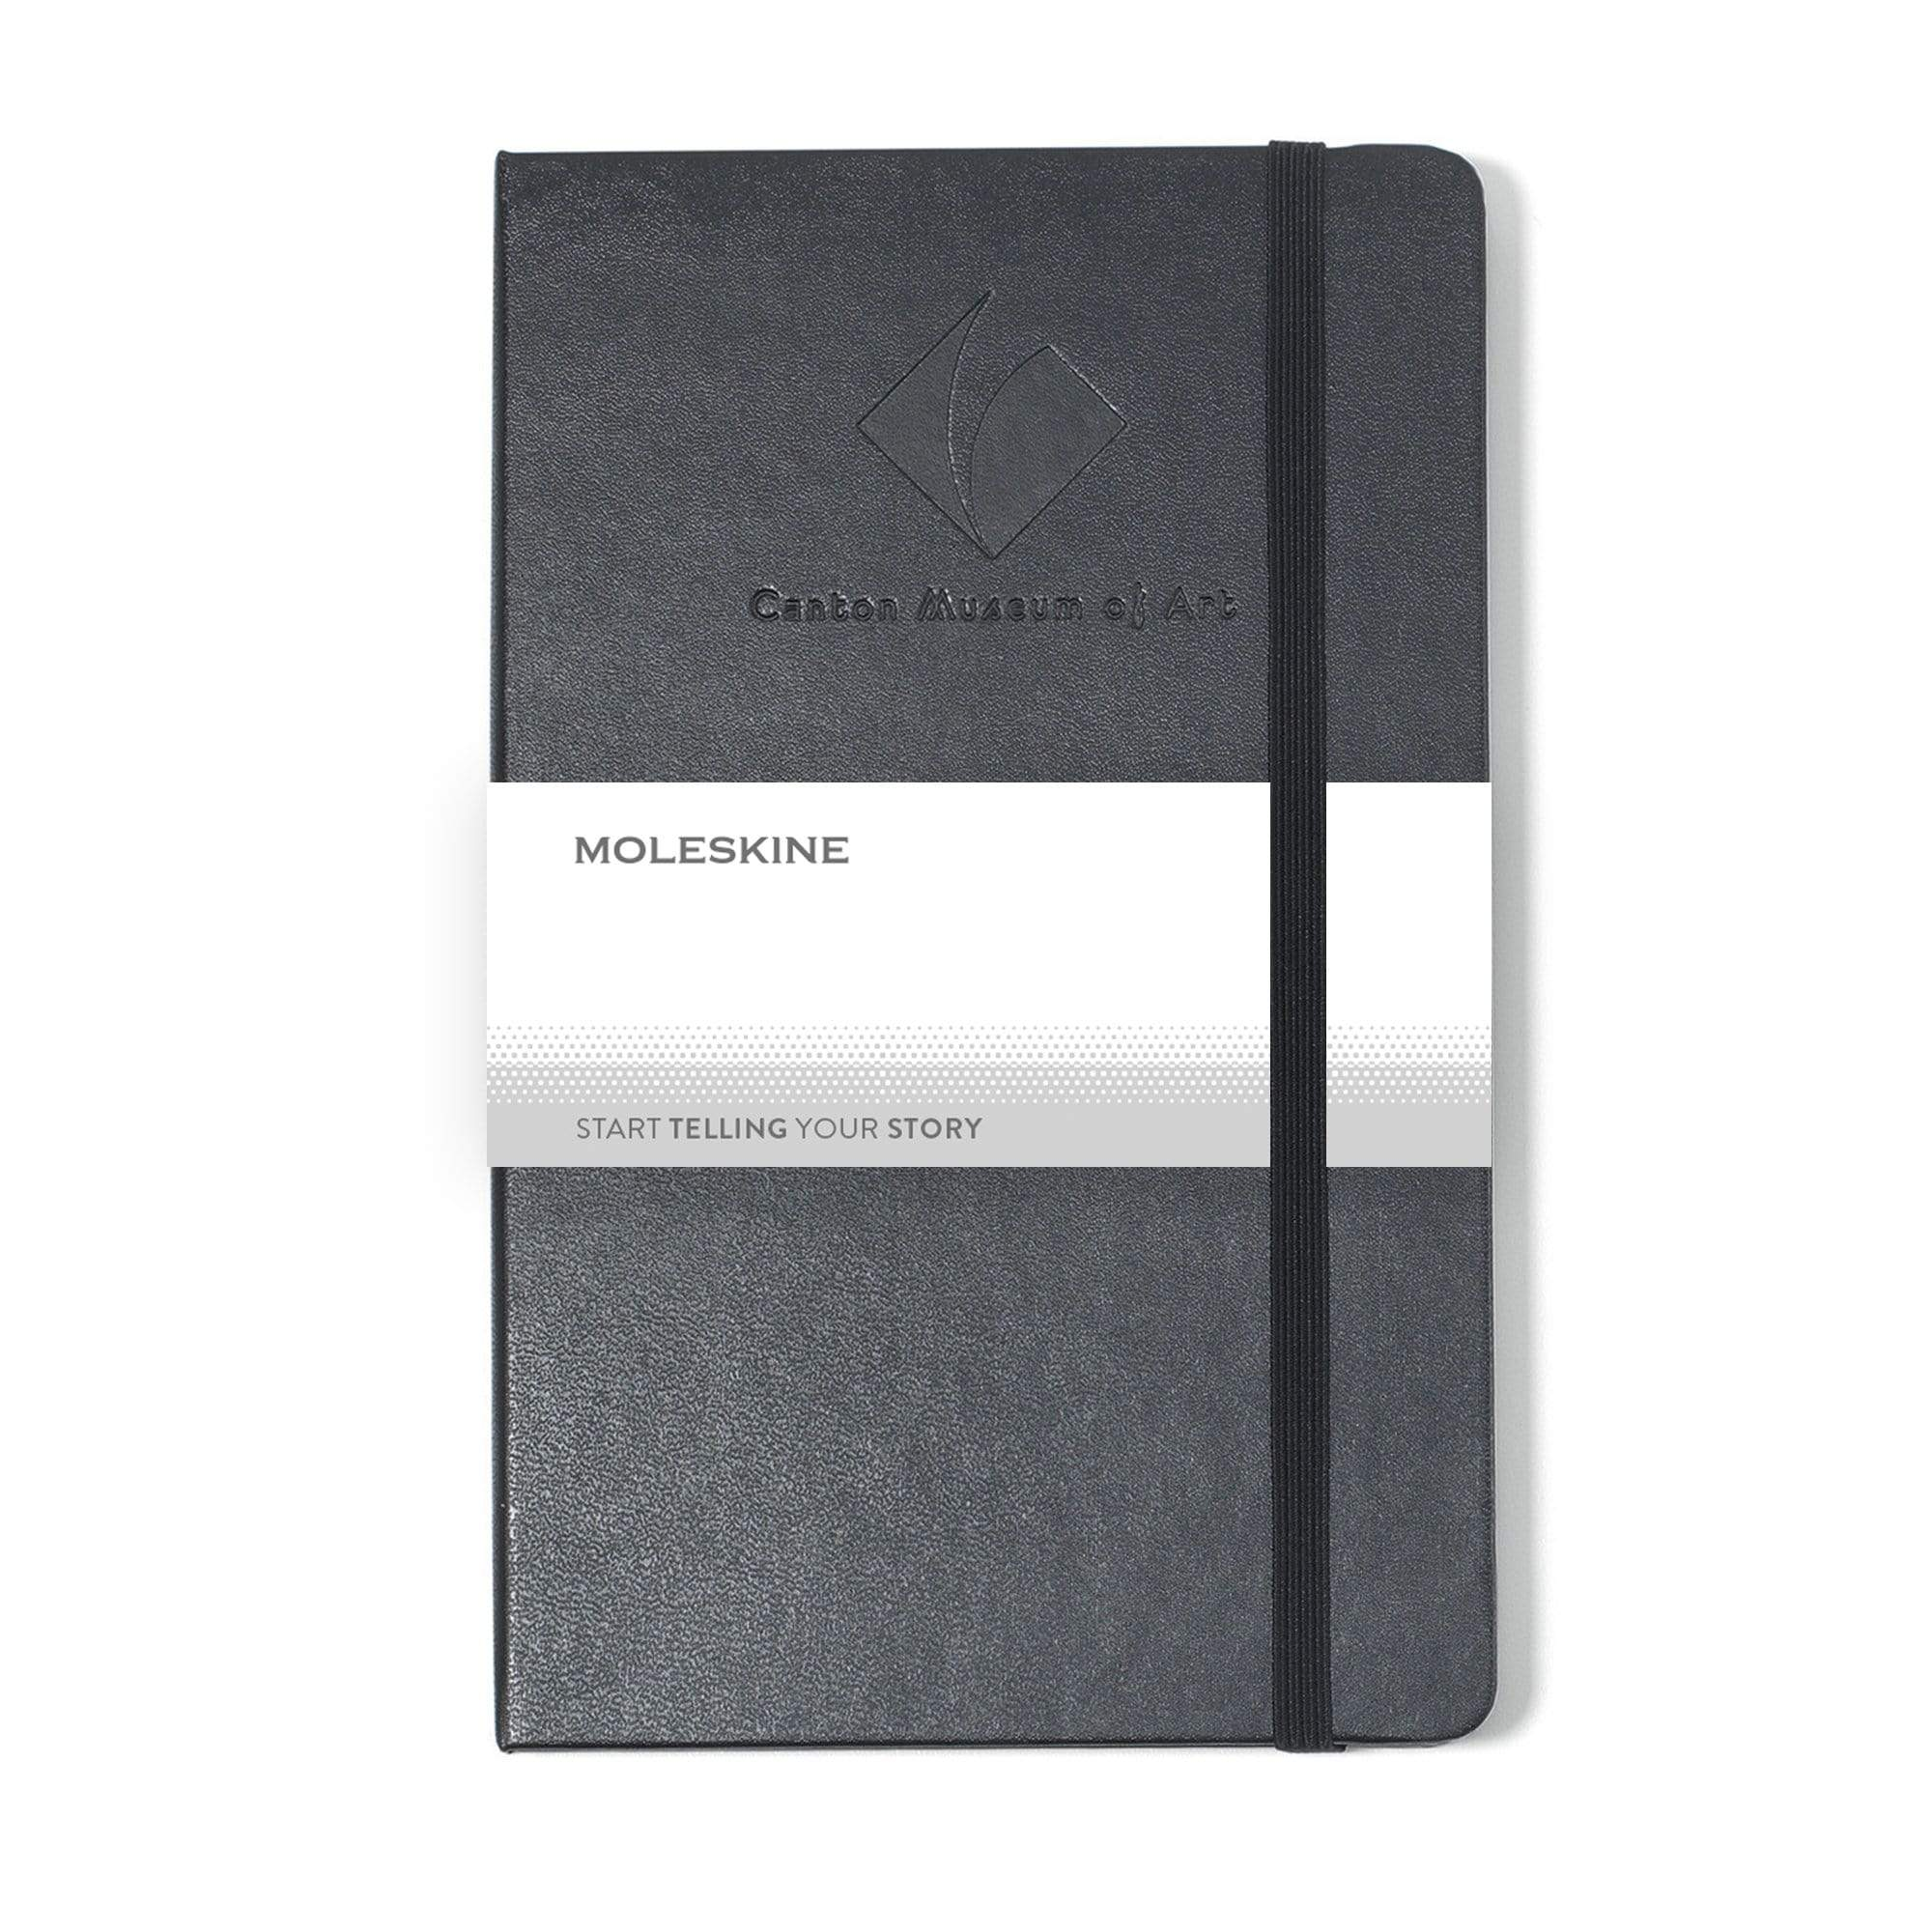 "Moleskine - 25 piece minimum Accessories OSFA / BLACK Moleskine® Hard Cover Ruled Large Notebook (5"" x  8.25"")"